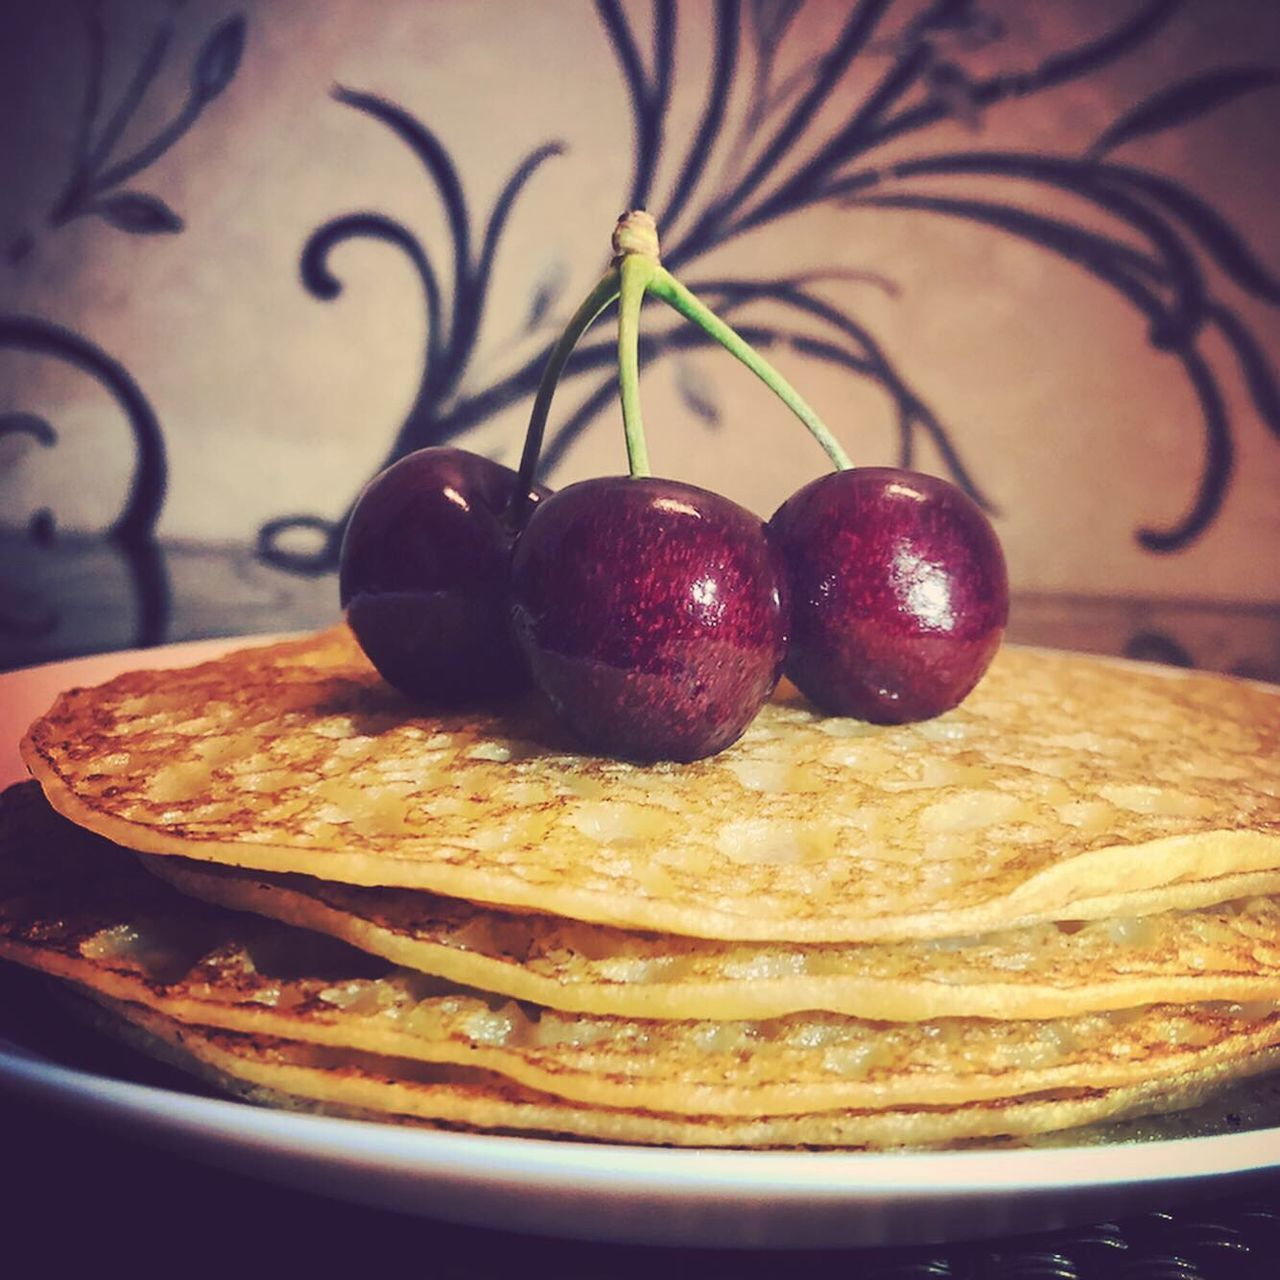 food, food and drink, fruit, healthy eating, freshness, indoors, wellbeing, plate, still life, close-up, no people, cherry, table, ready-to-eat, apple - fruit, focus on foreground, sweet food, selective focus, berry fruit, dessert, apple, temptation, ripe, breakfast, snack